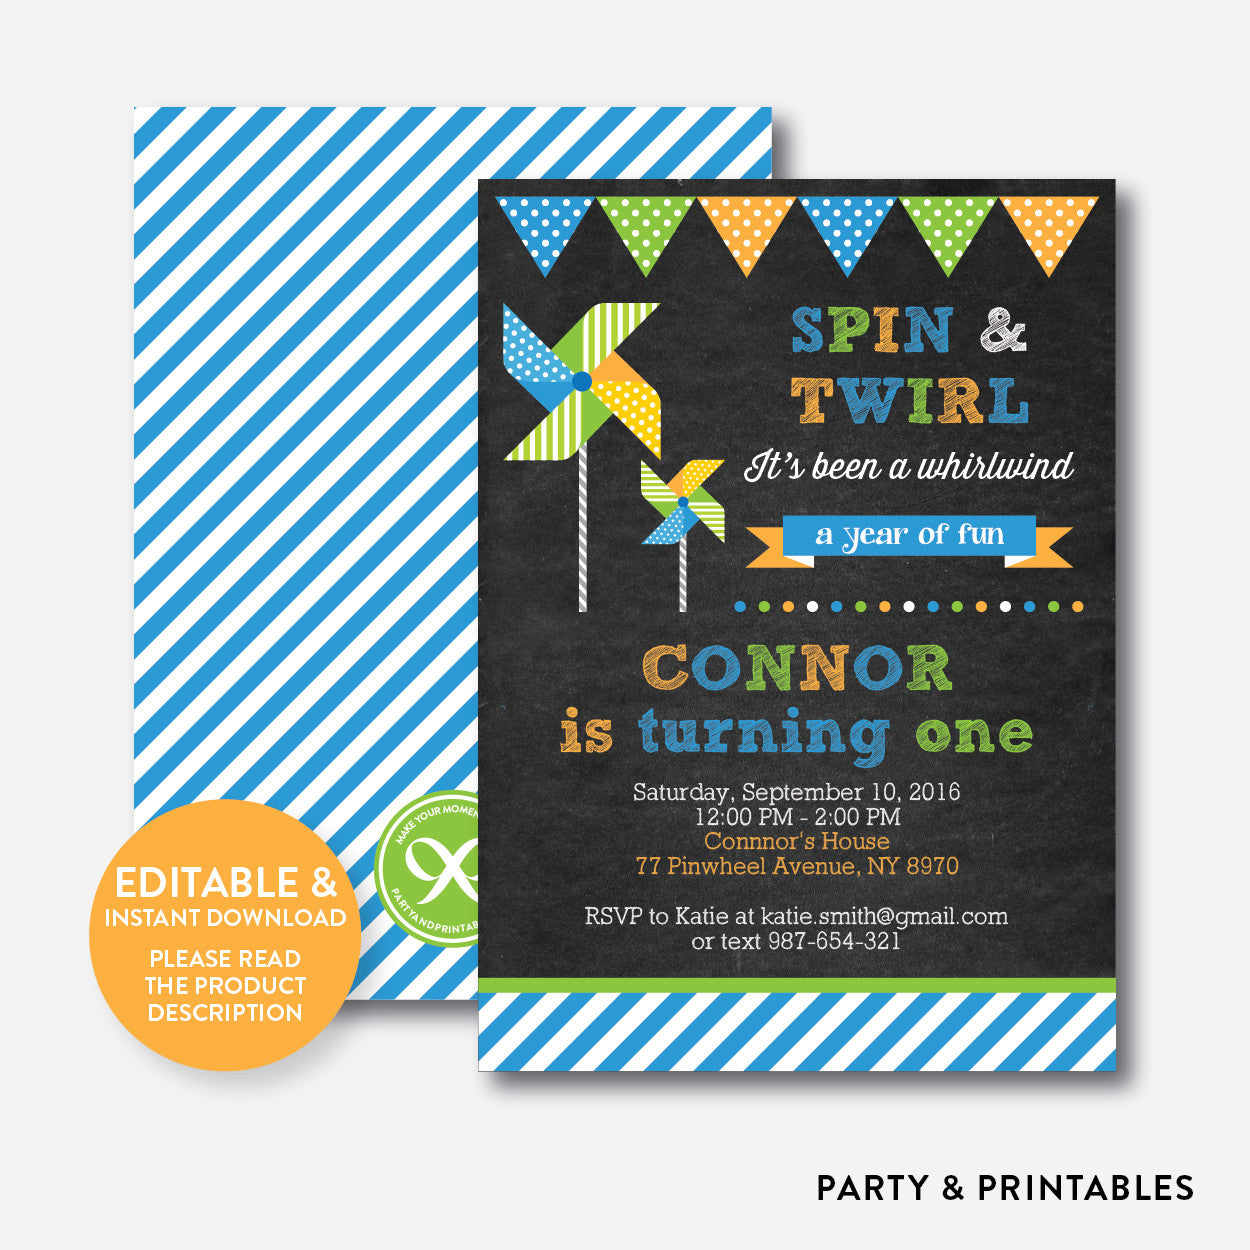 Pinwheel Chalkboard Kids Birthday Invitation / Editable / Instant Download (CKB.09), invitation - Party and Printables